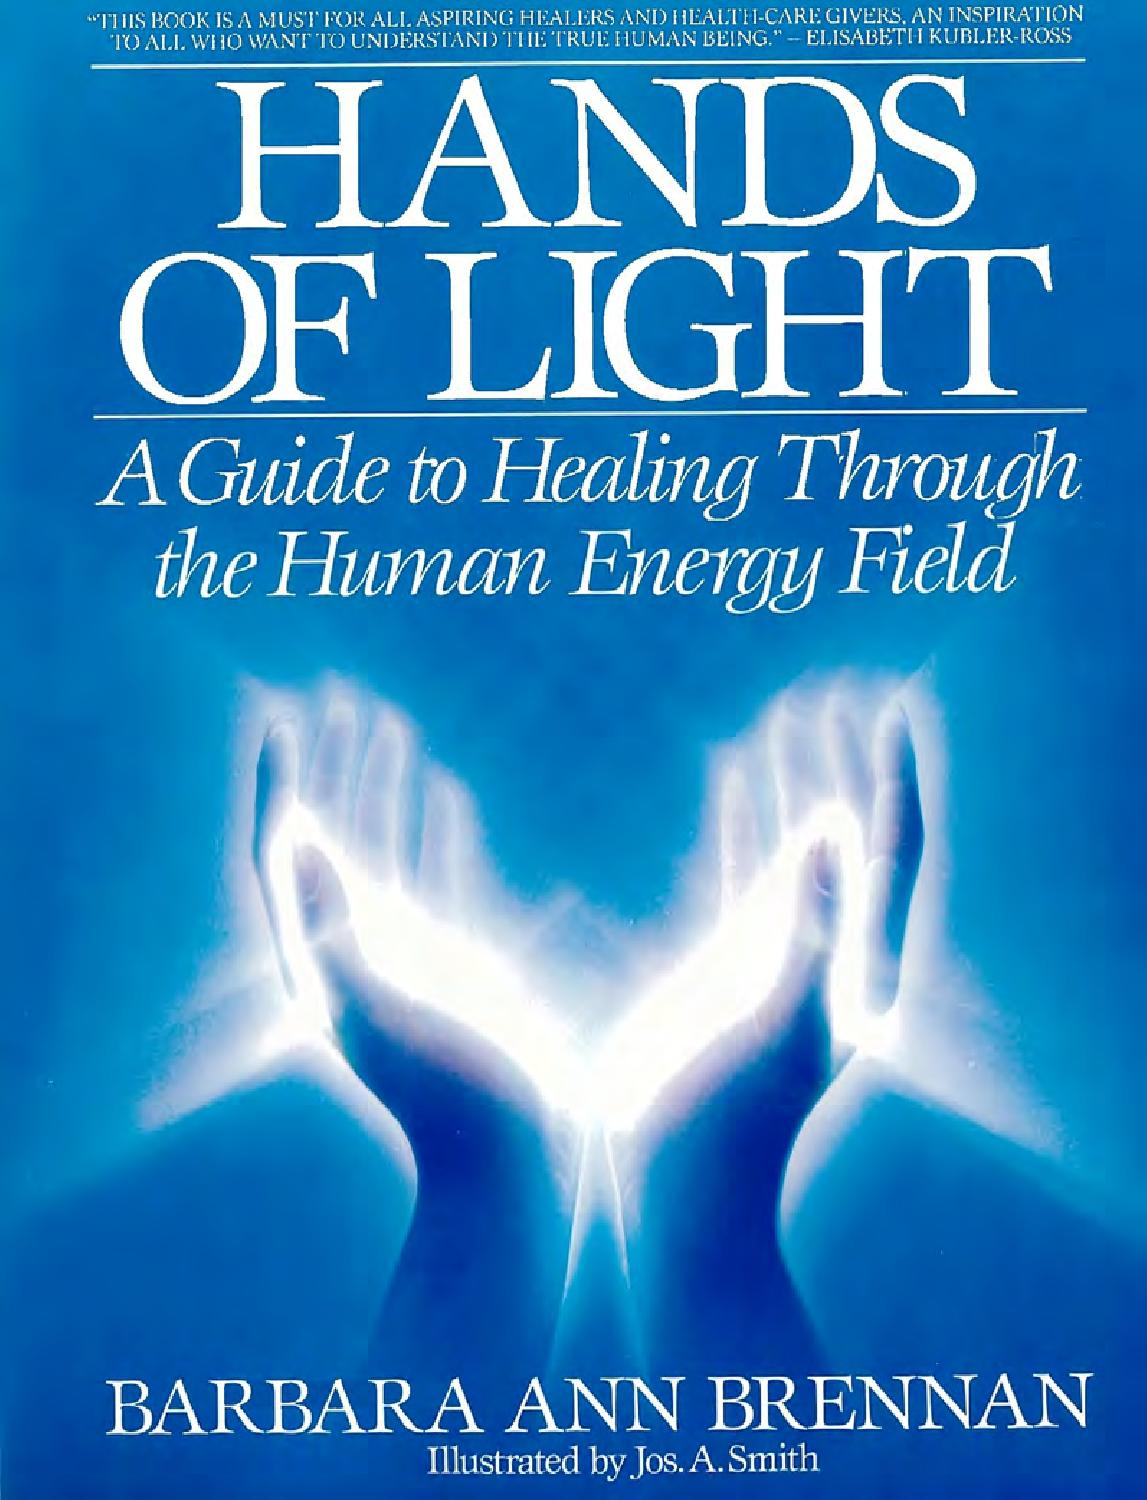 Barbara Brennan Hands of light a guide to healing by Hristo